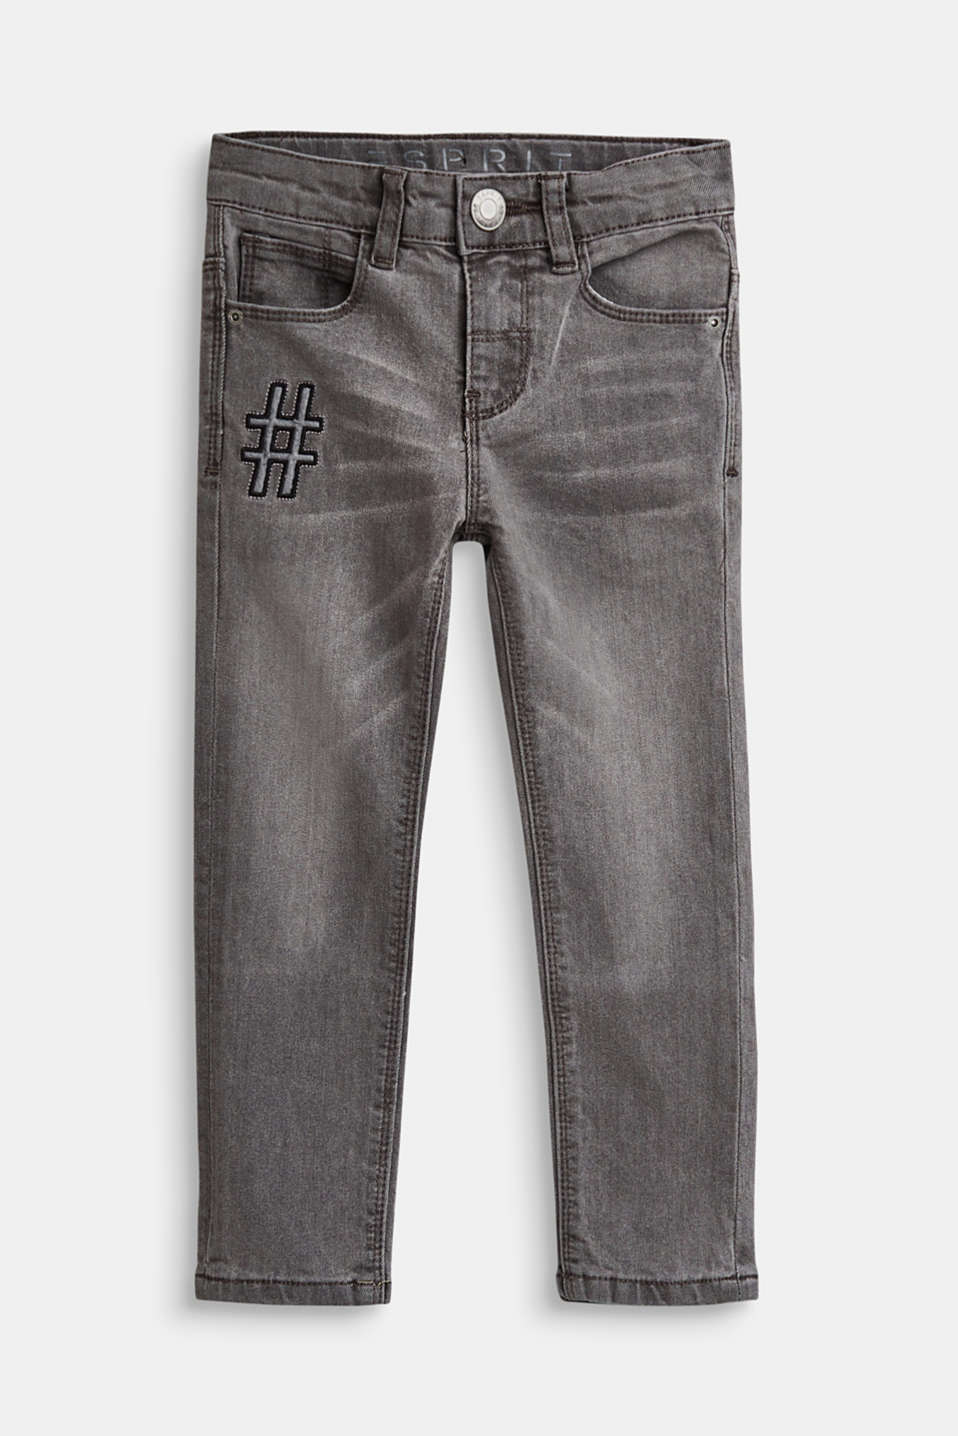 Esprit - 11 - denim pants grey